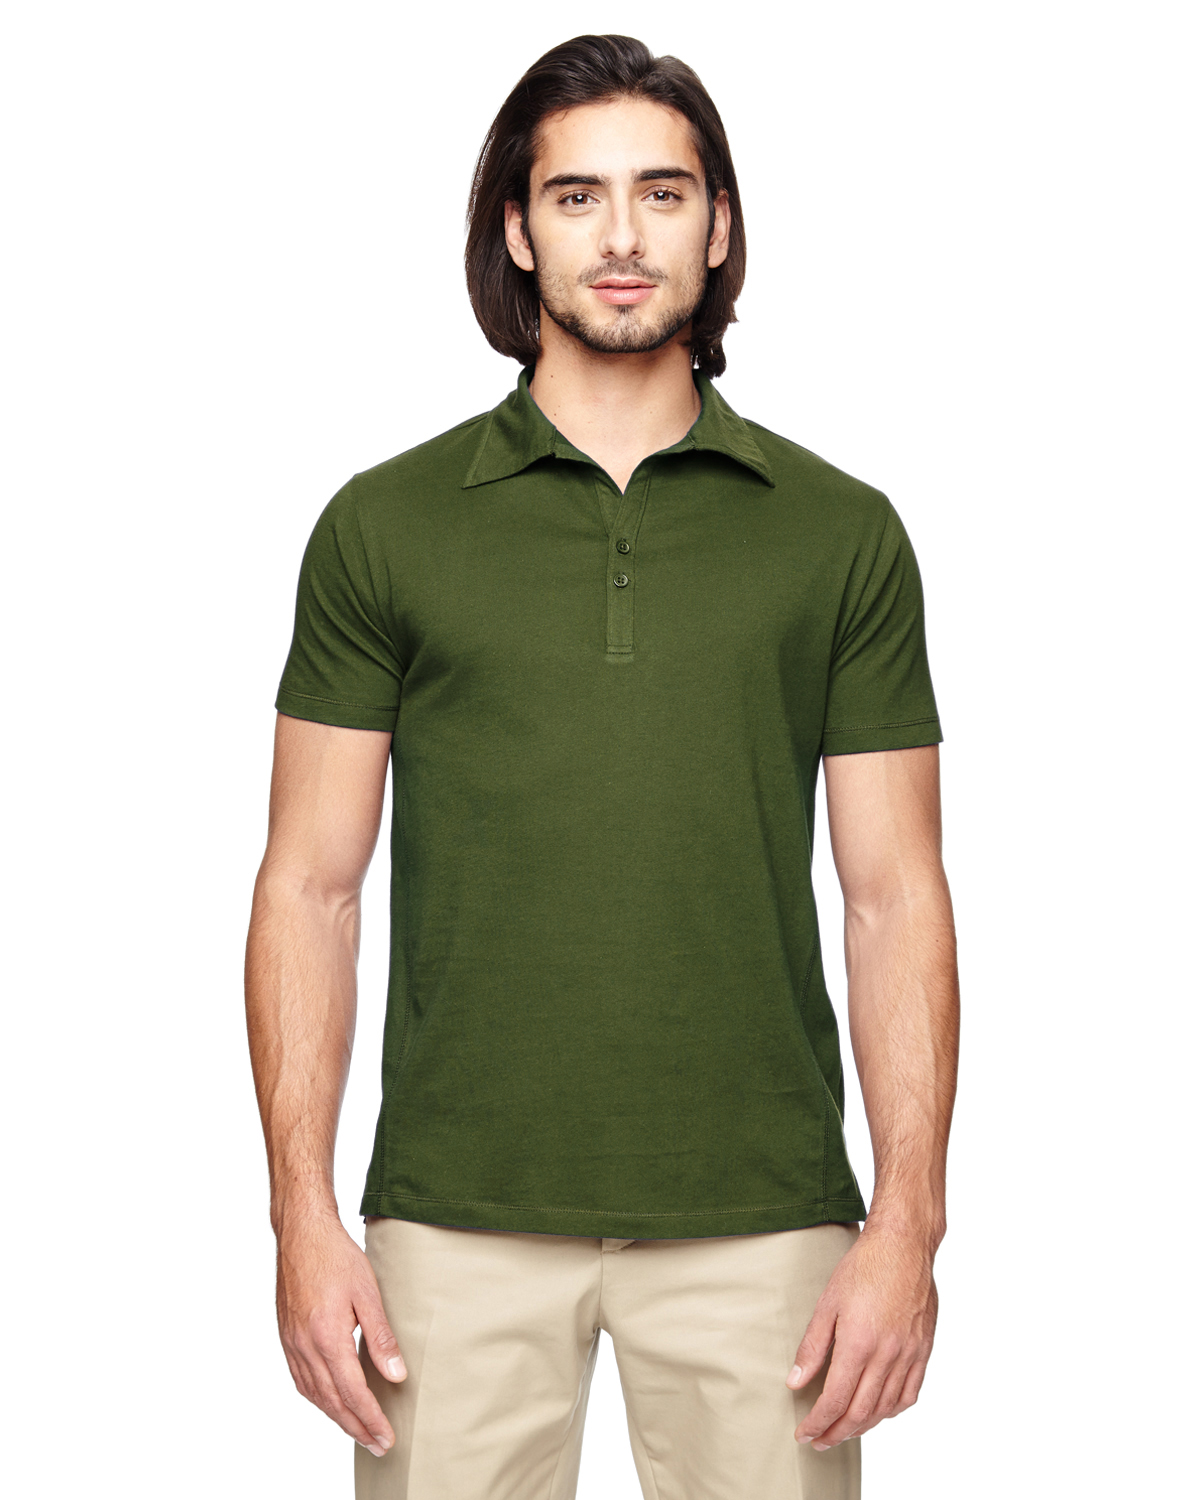 Econscious EC2505 - Men's 4.4 oz. 100% Organic Cotton Jersey Short-Sleeve Polo